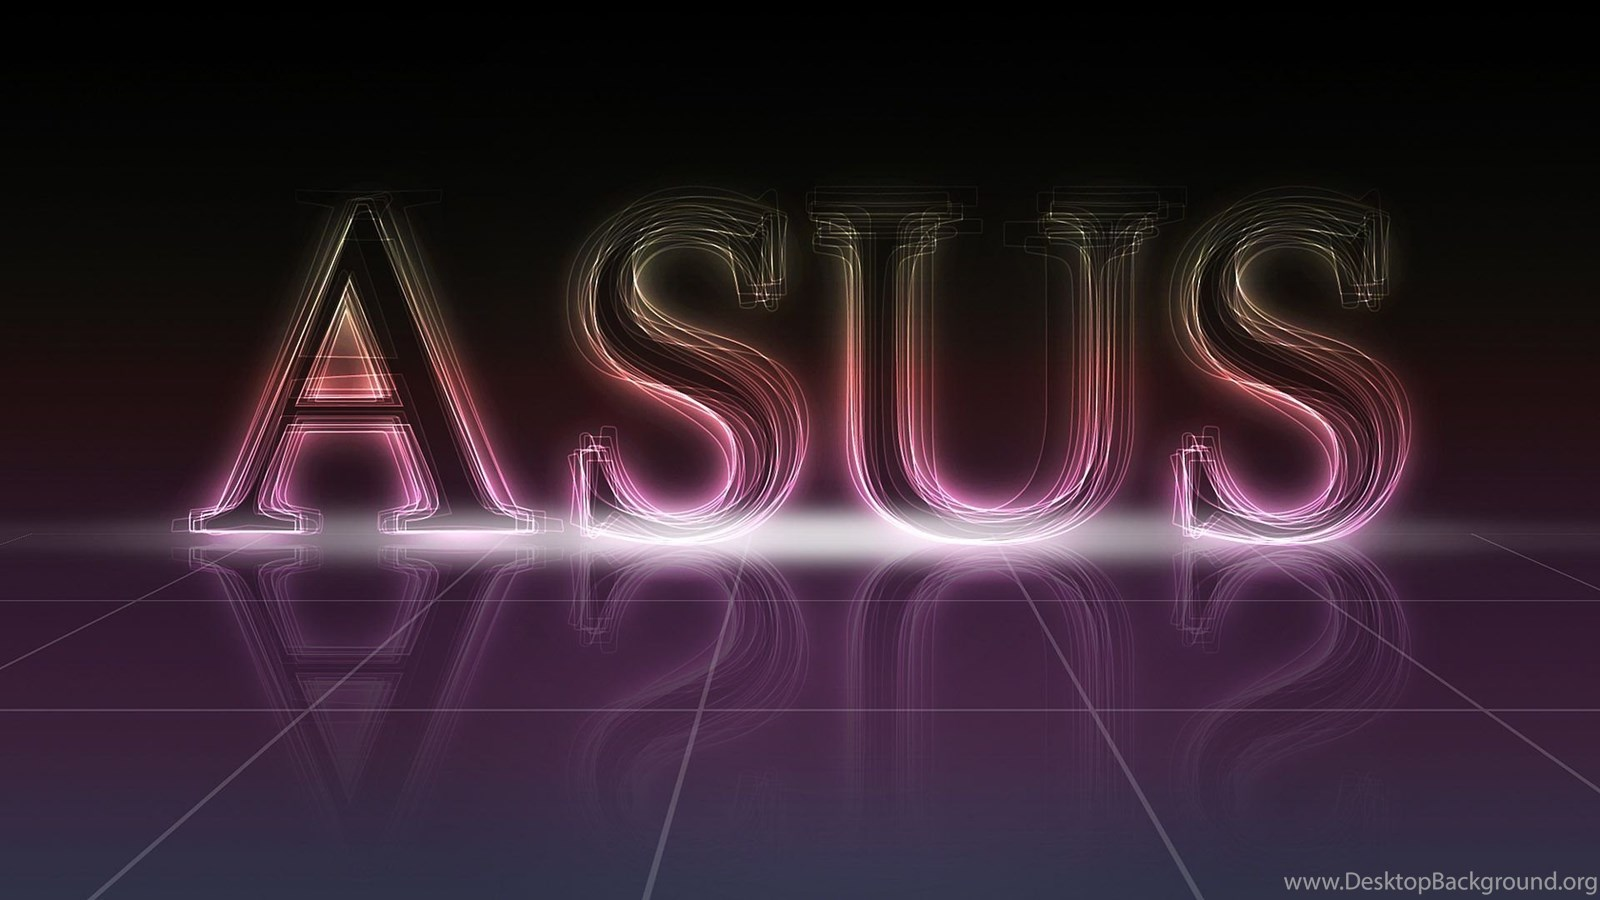 asus wallpapers 1366x768 wallpapers high quality resolution desktop